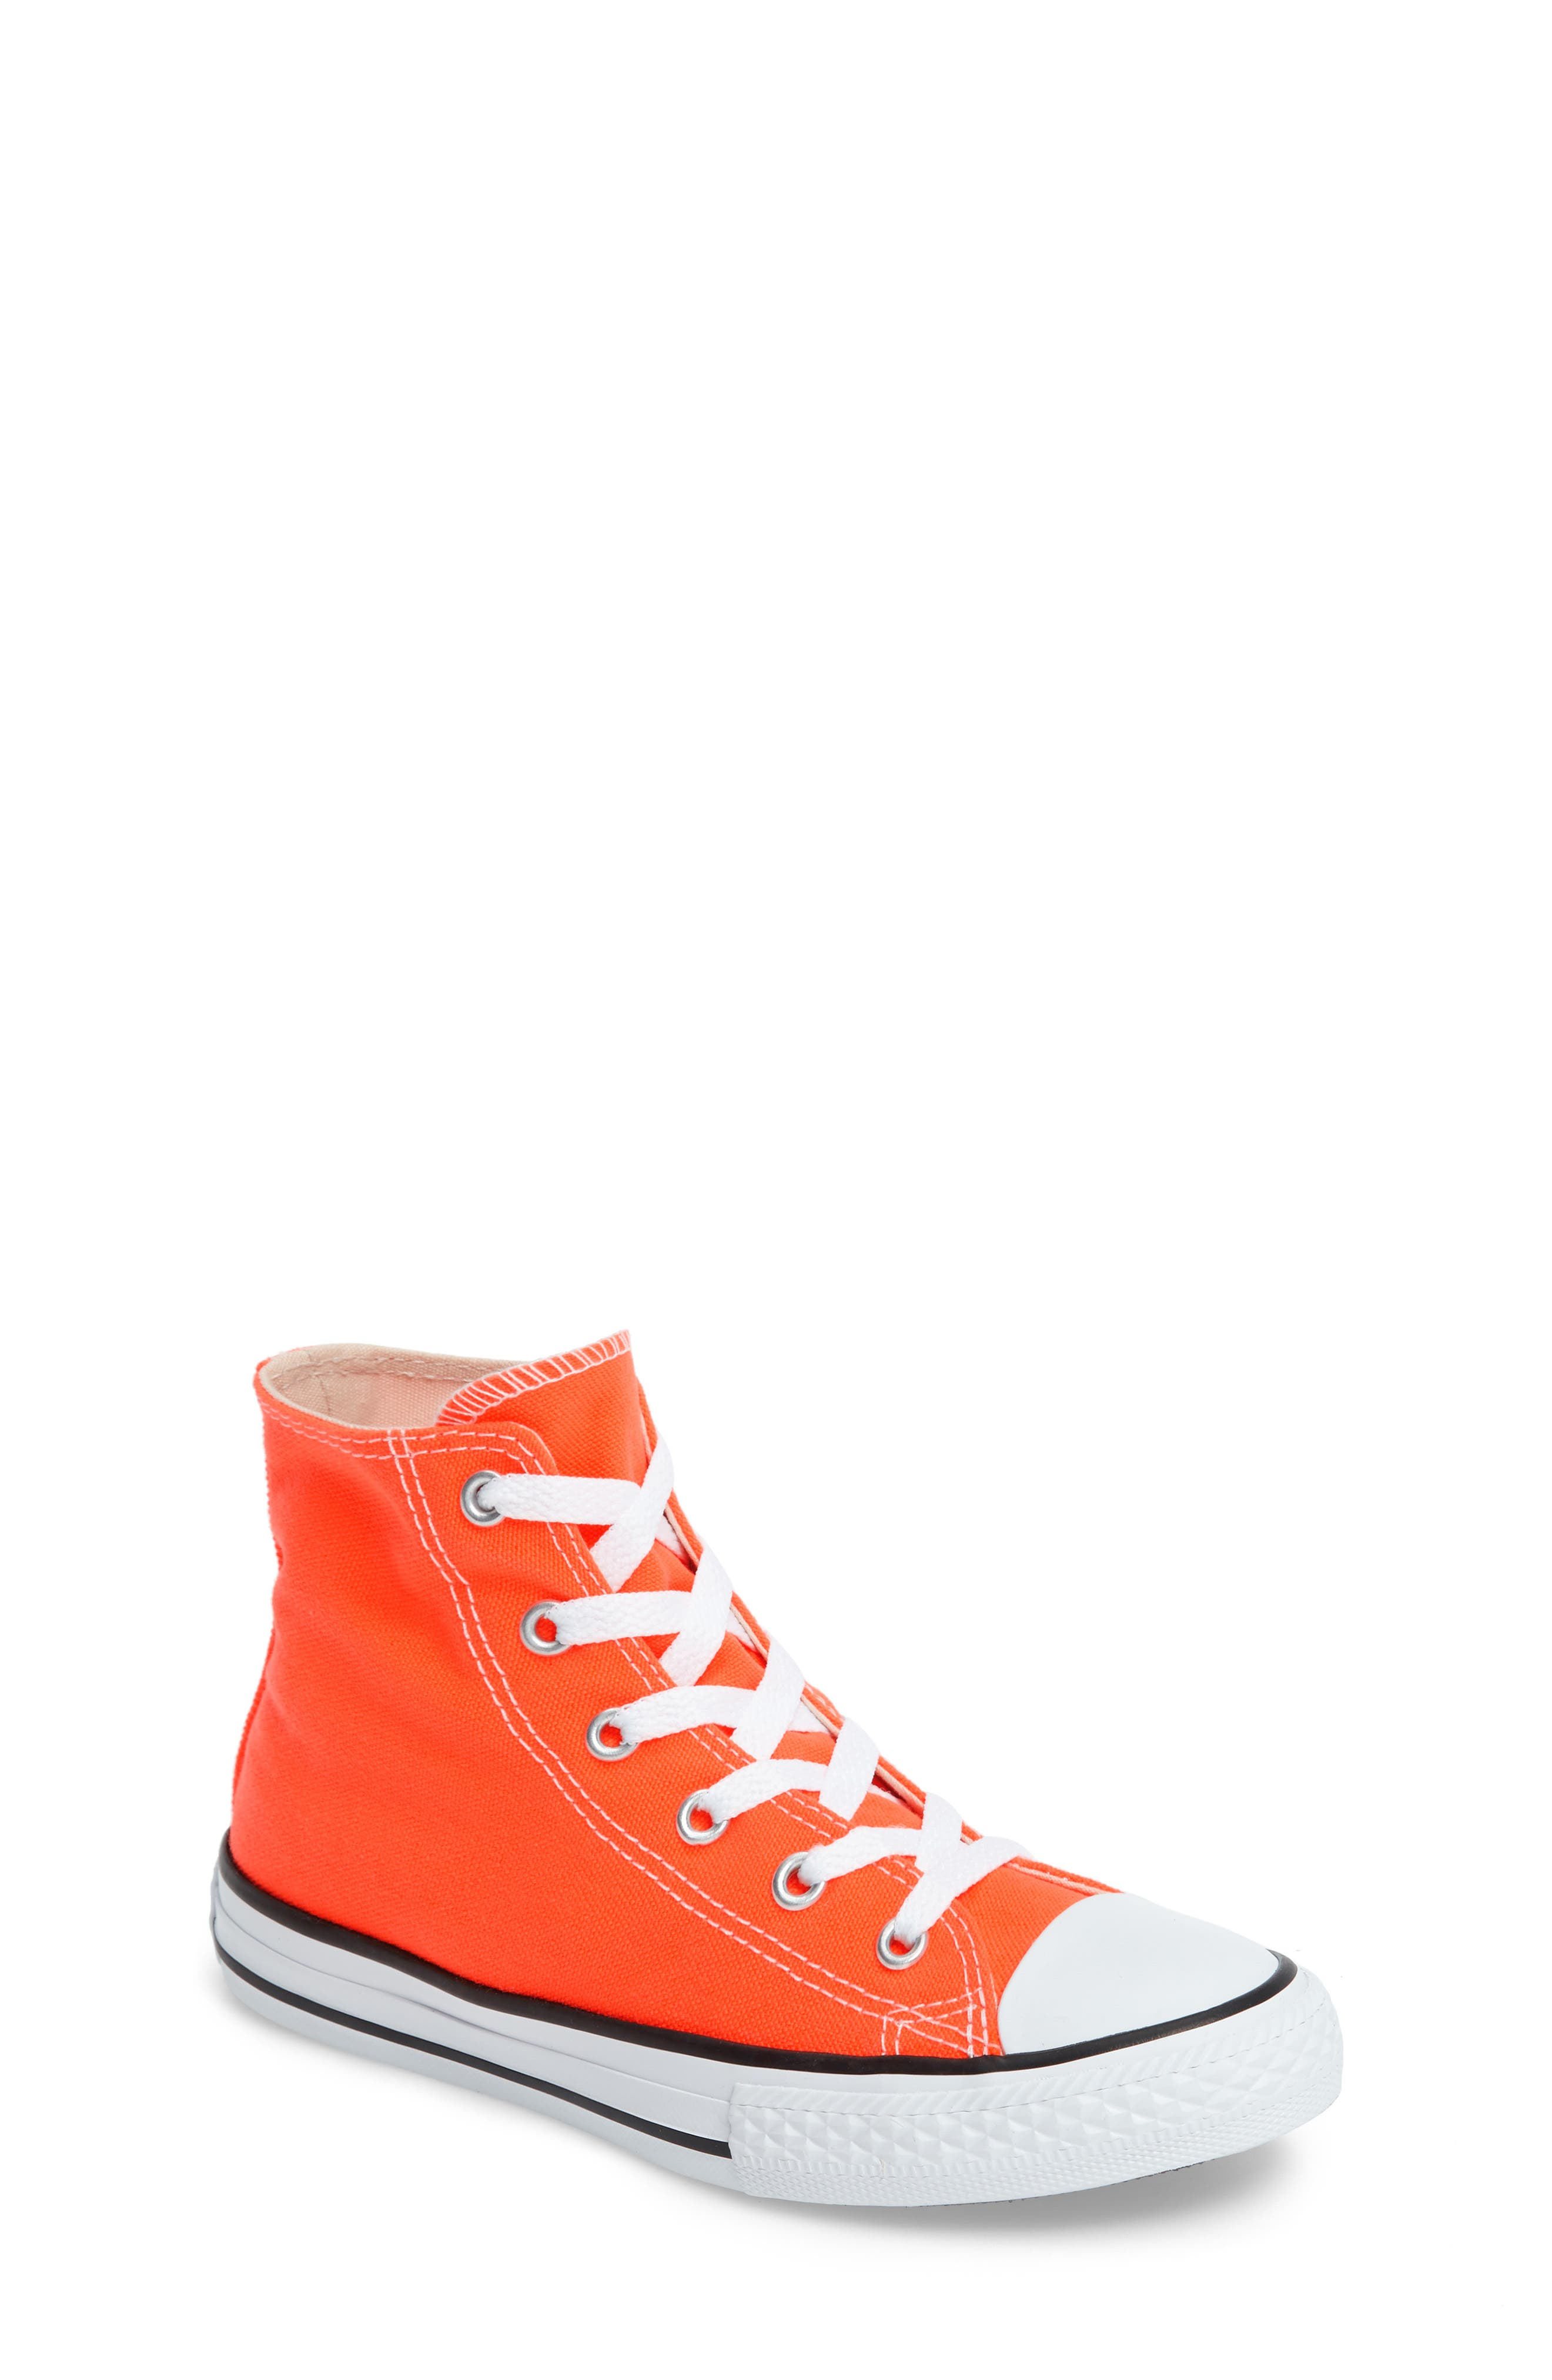 Converse Chuck Taylor® Seasonal High Top Sneaker (Baby, Walker, Toddler, Little Kid & Big Kid)